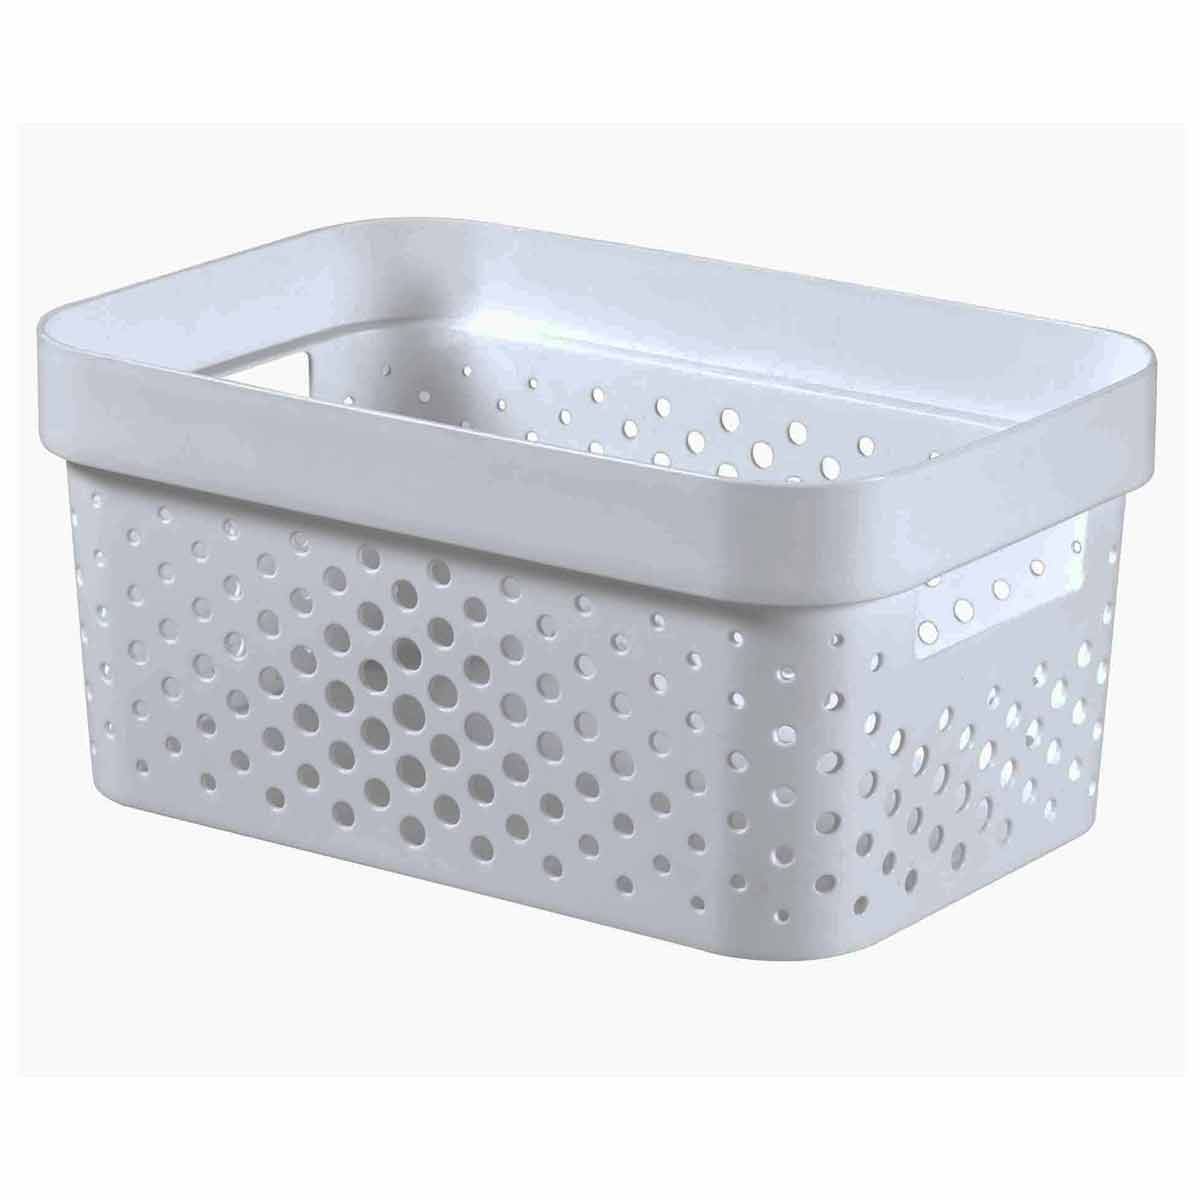 Curver Infinity Recycled Storage Basket 4.5 Litre, White